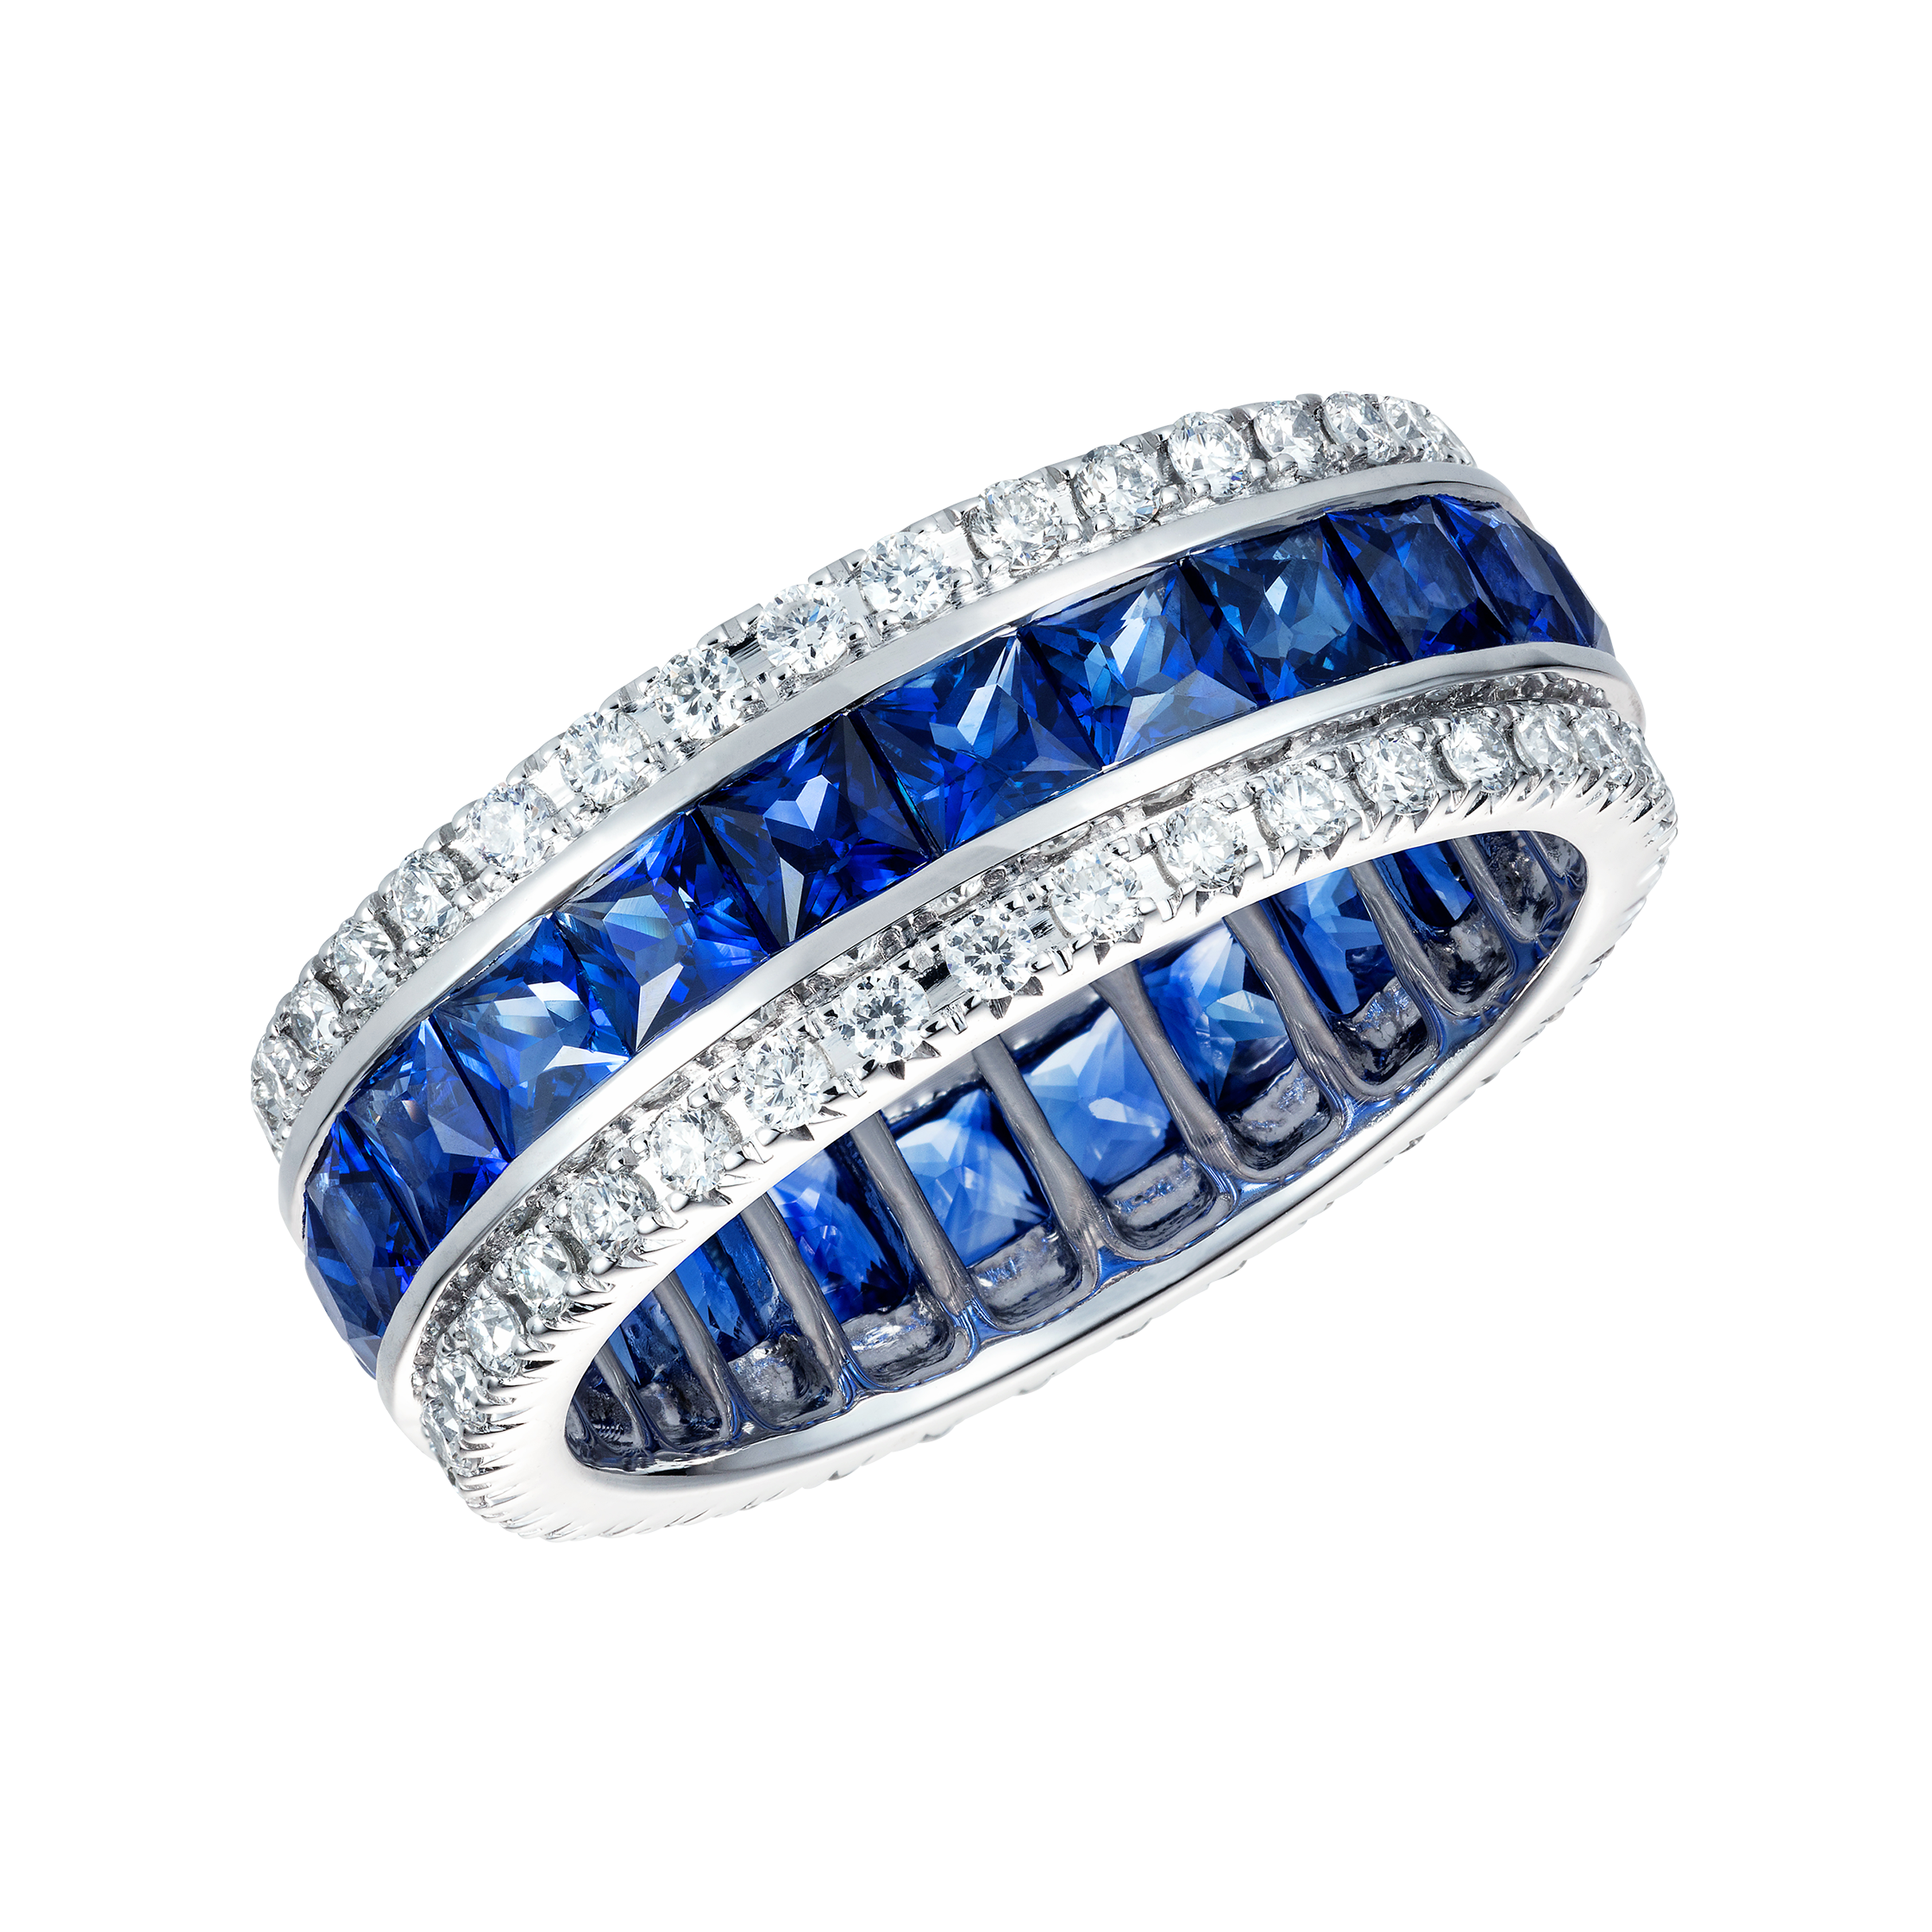 lovely awesome roman ring ideas weddings elegant image com alternative color blue crest wedding of rings